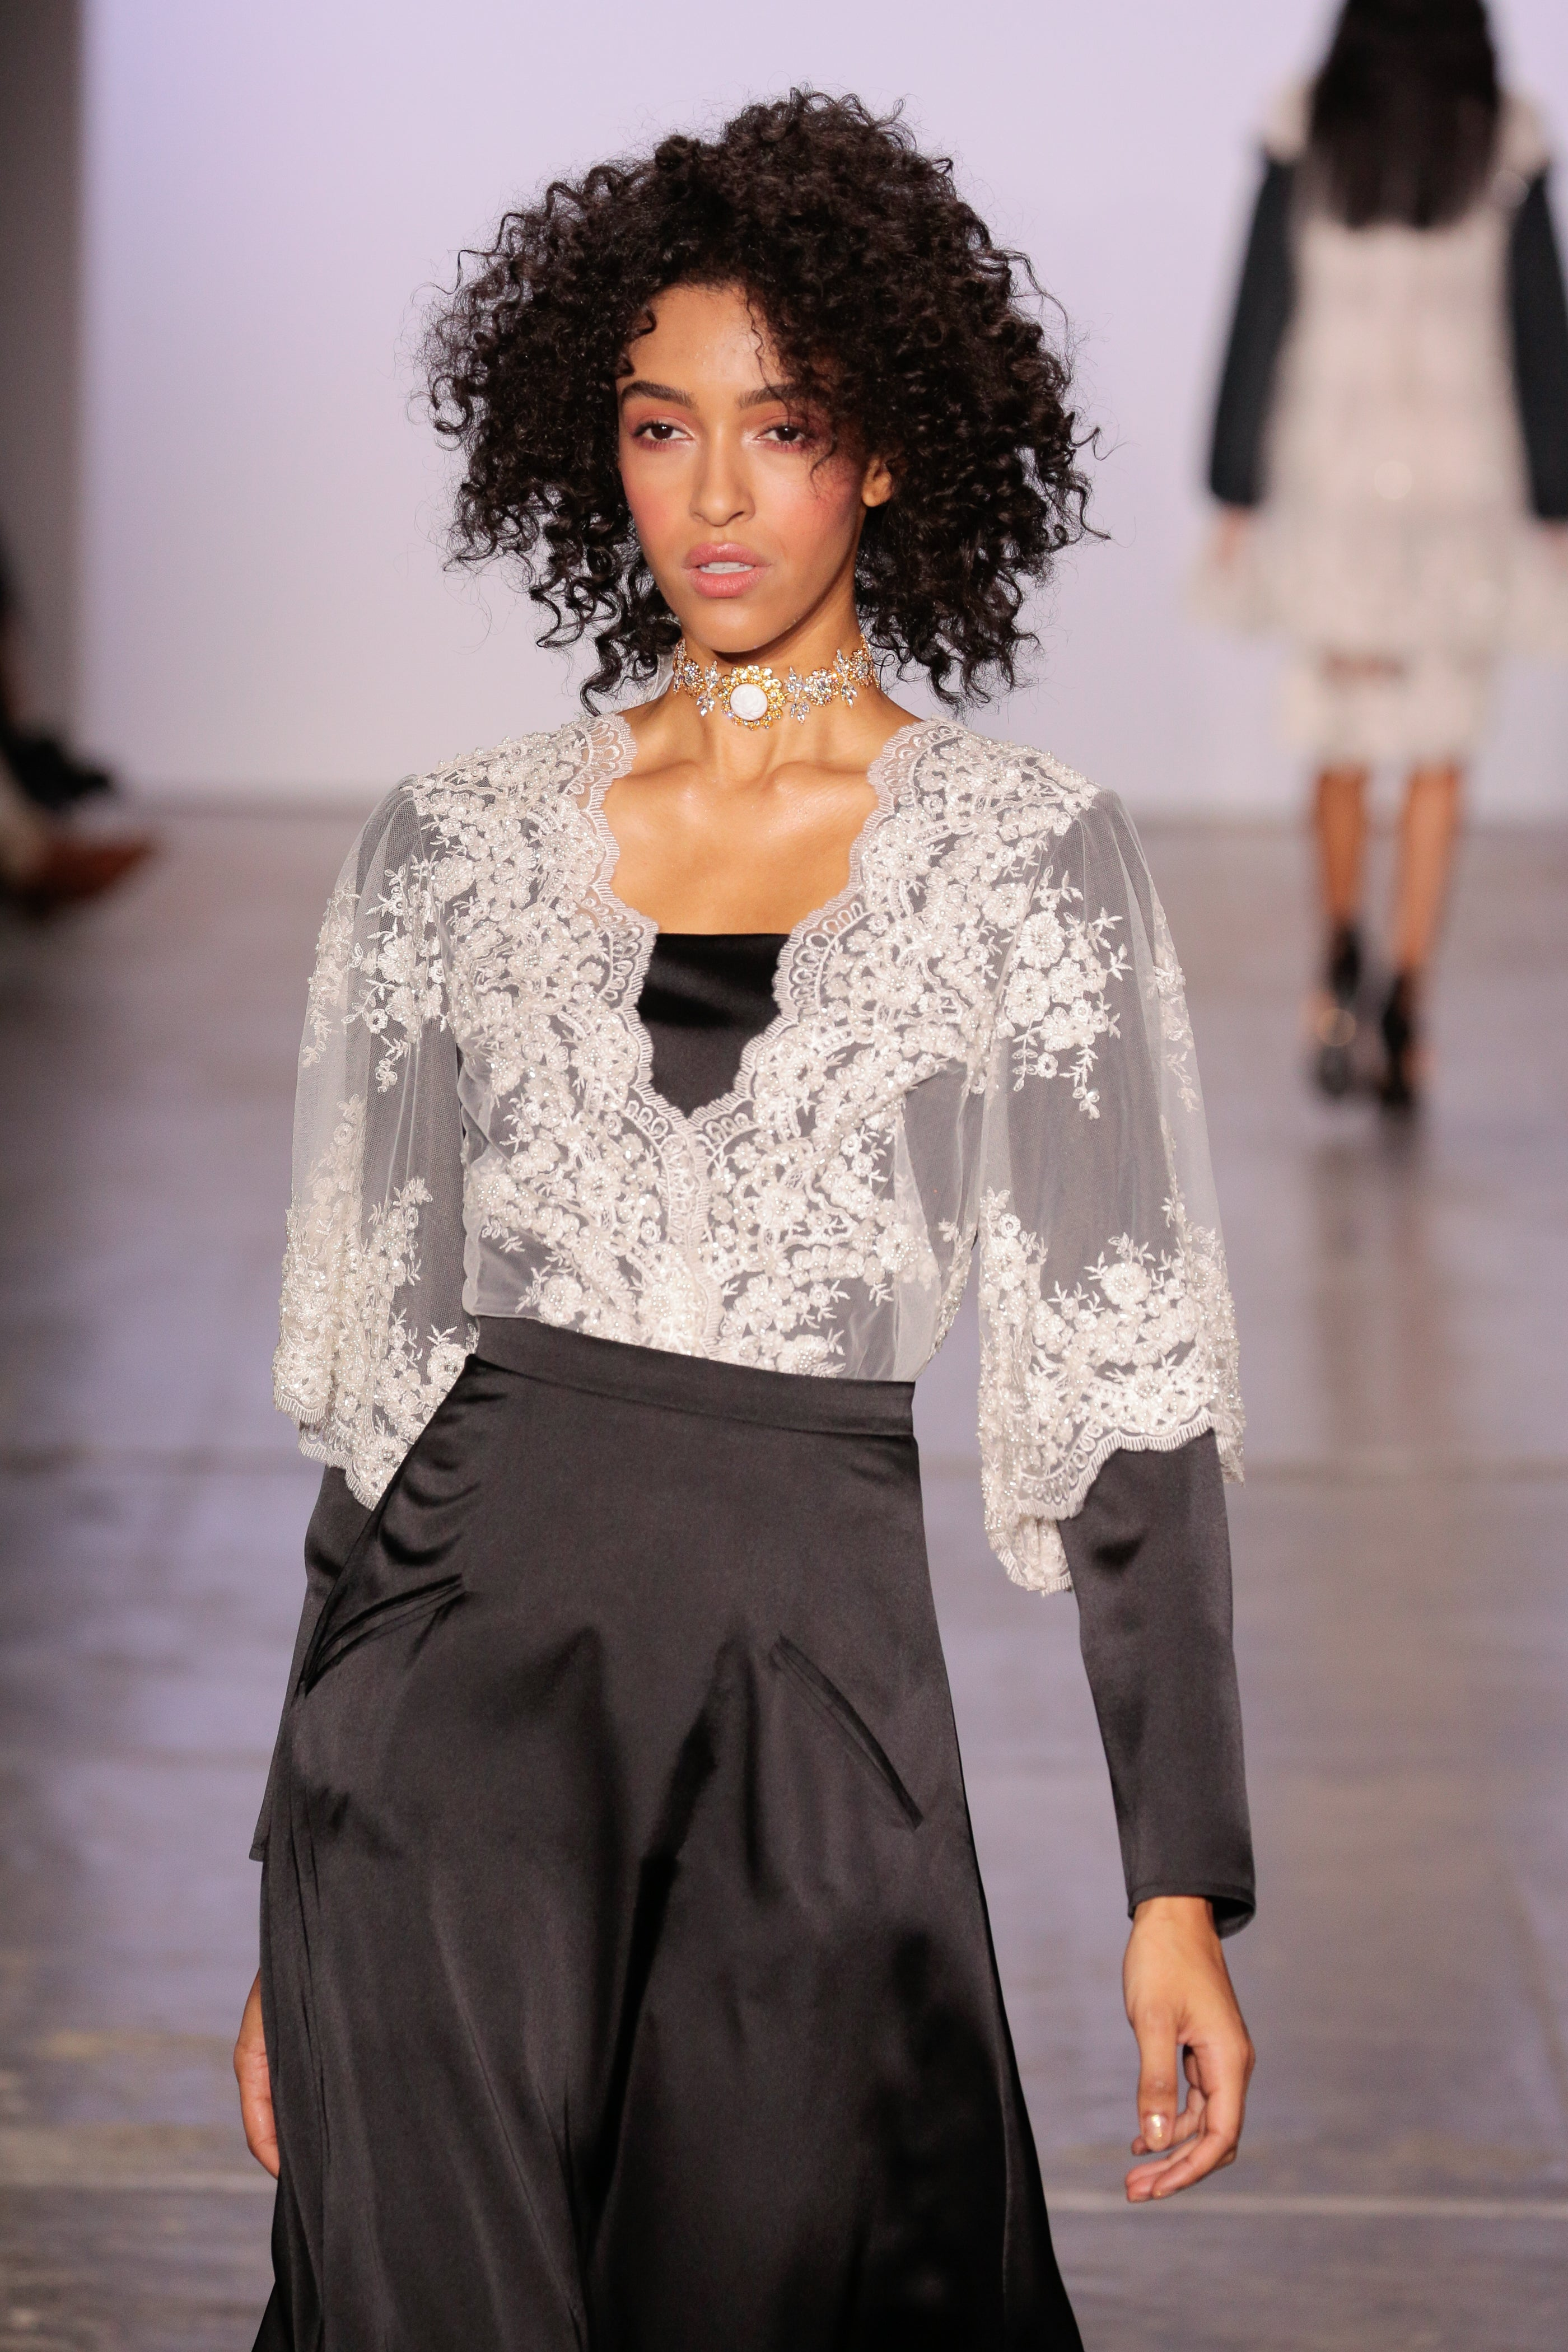 BLACK SILK TOP WITH WHITE EMBROIDERY